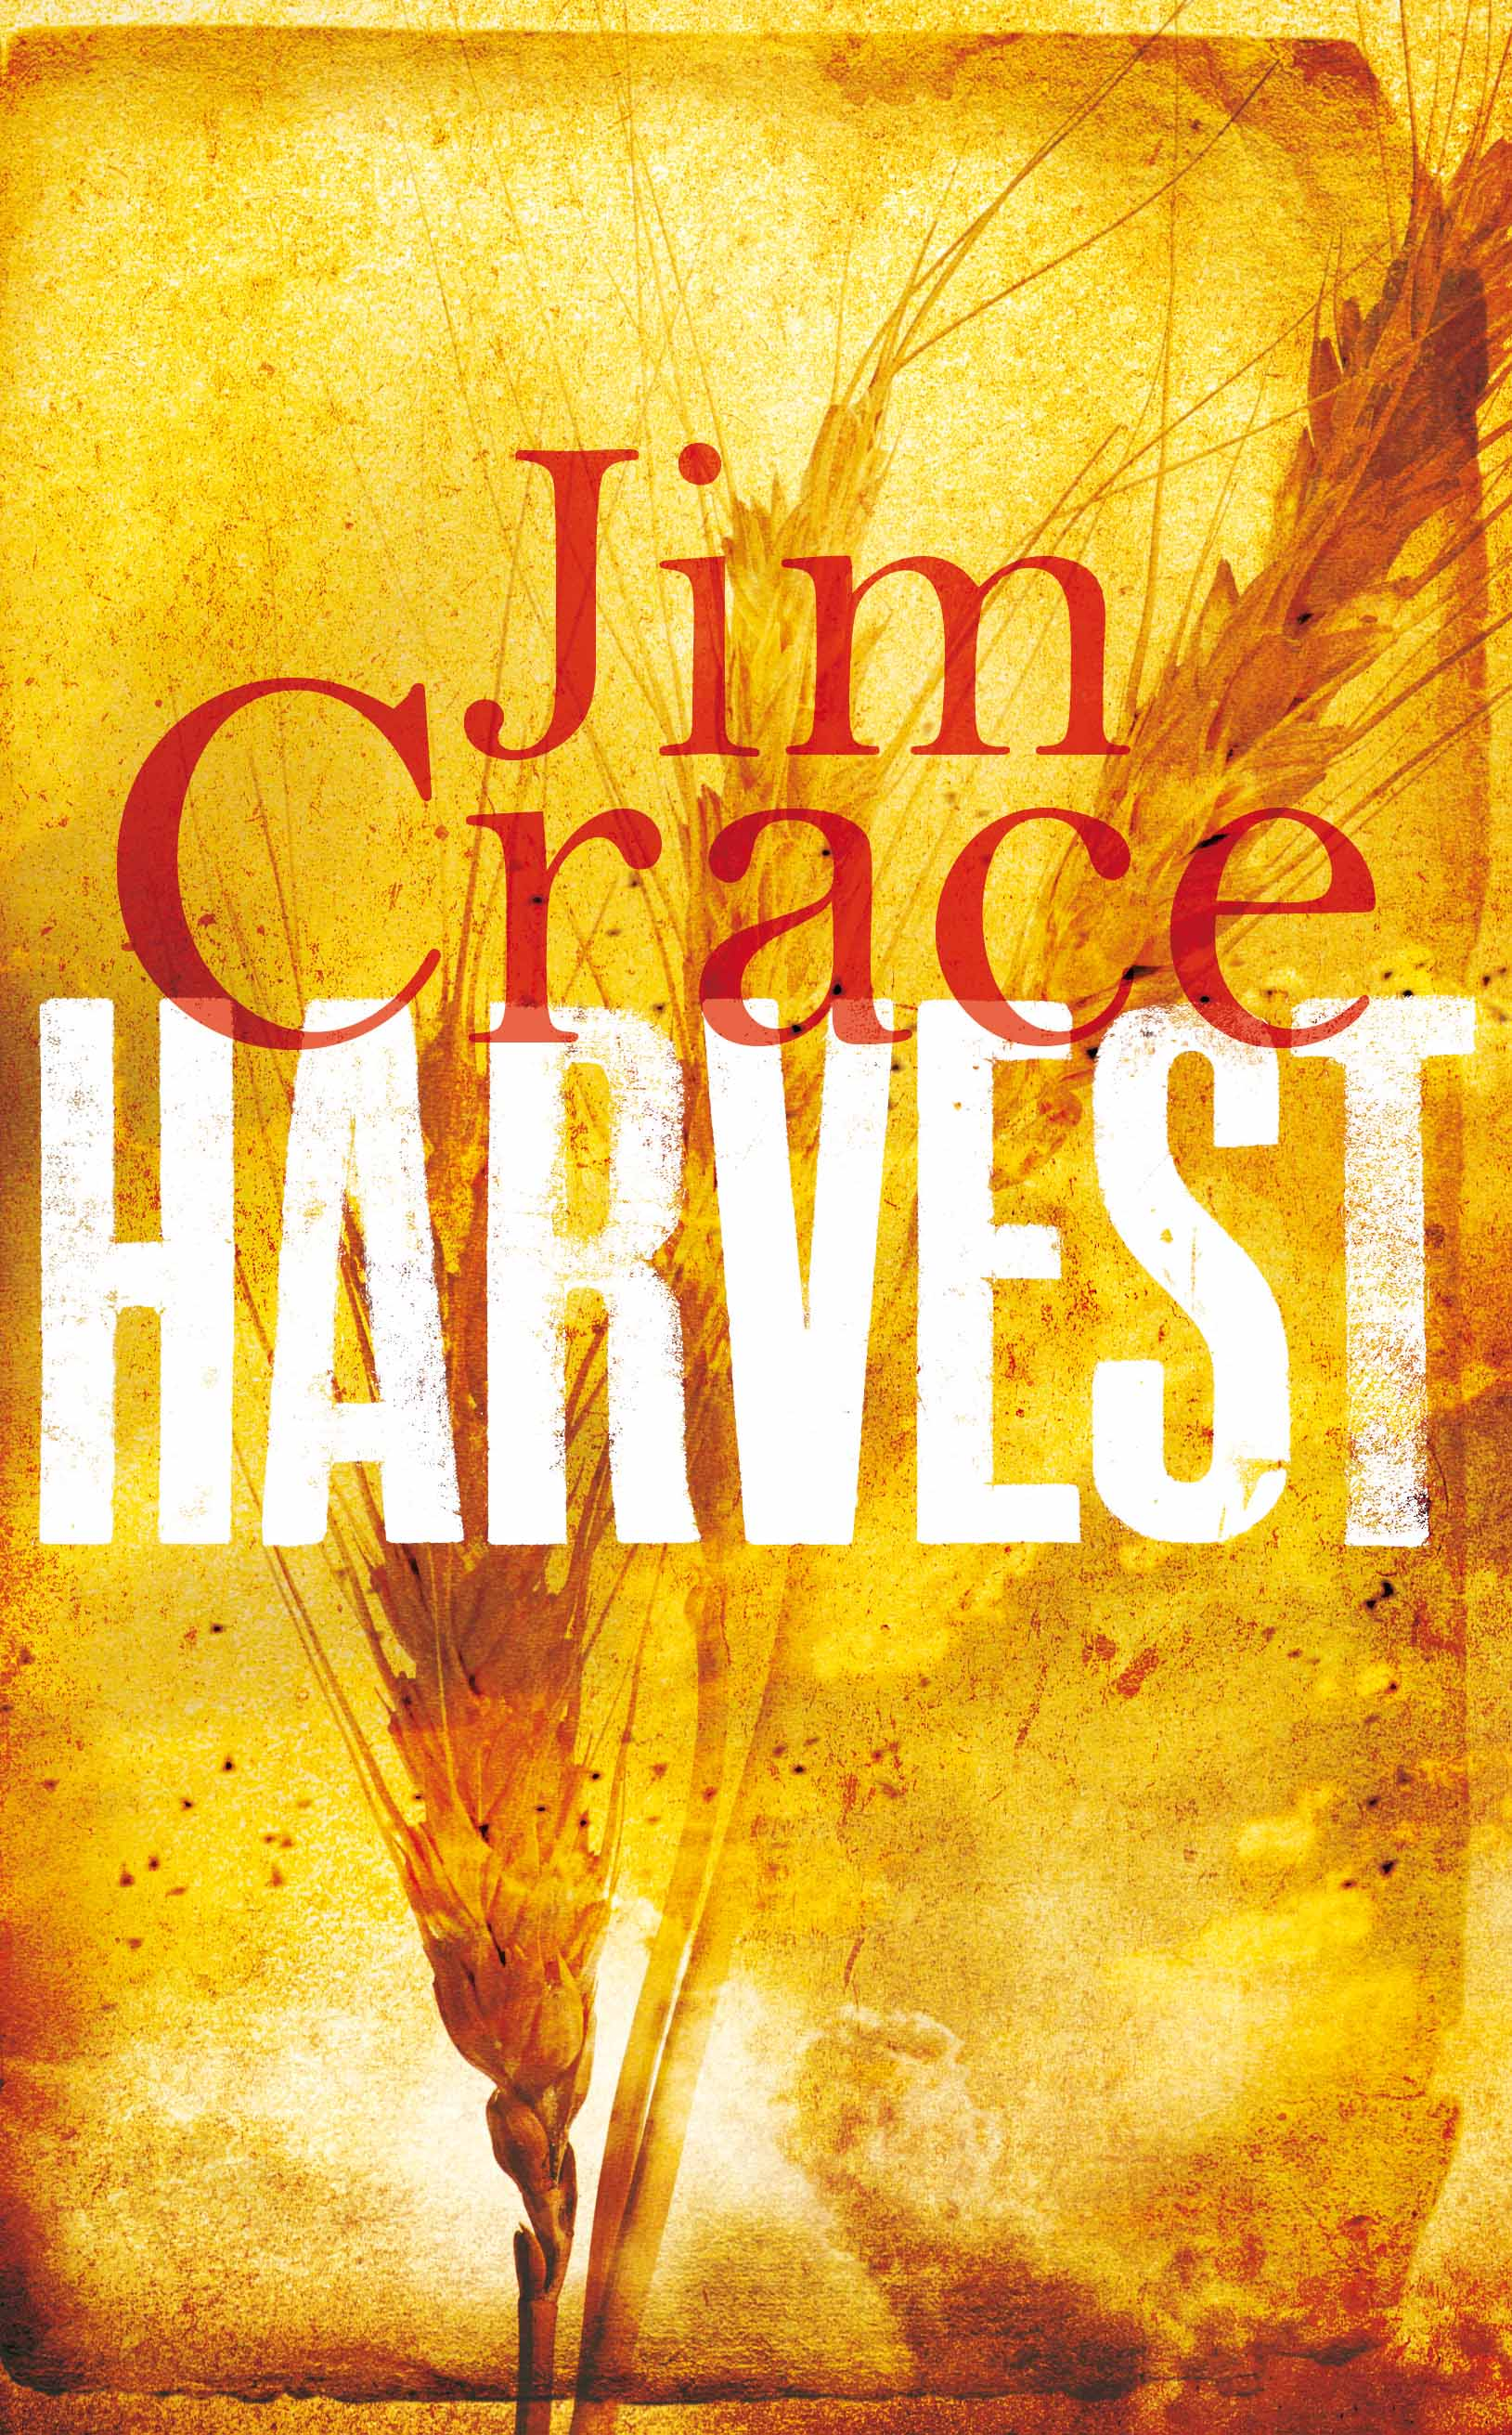 Jim-Crace-Harvest